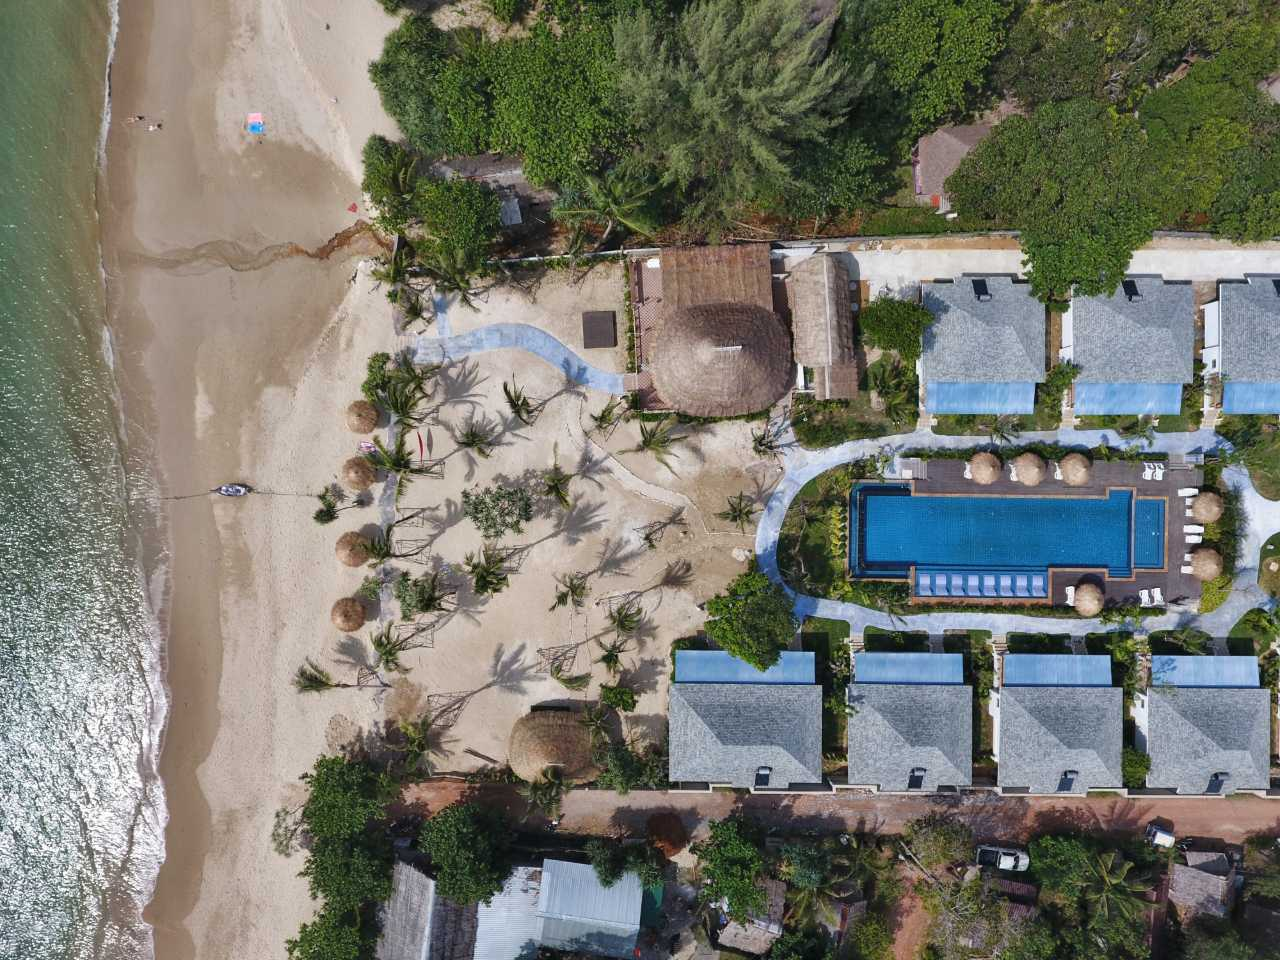 Aerial view of the grounds of Lanta Casa Blanca on Koh Lanta, Thailand